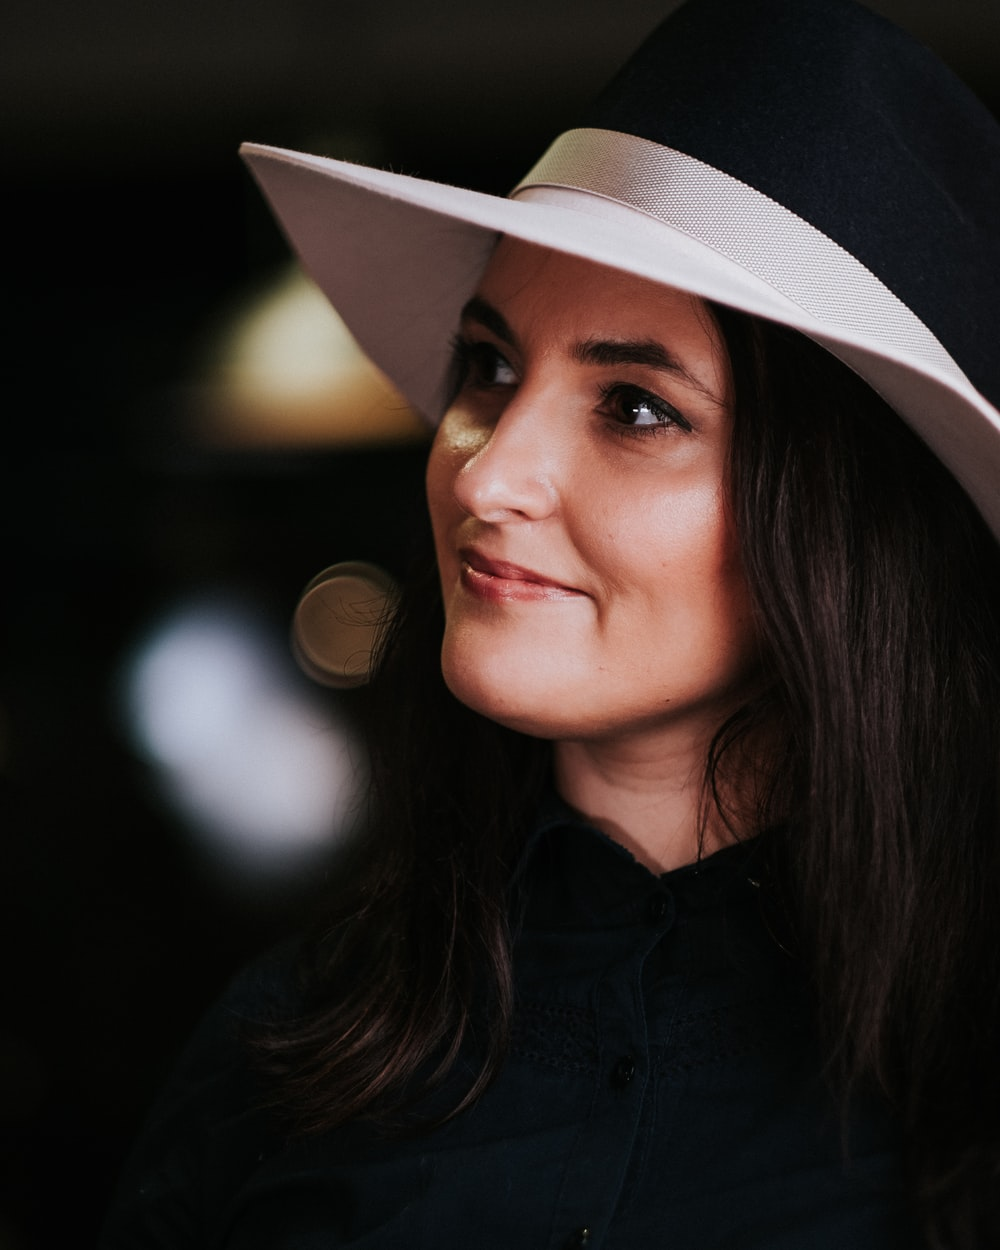 woman in black button up shirt wearing white fedora hat